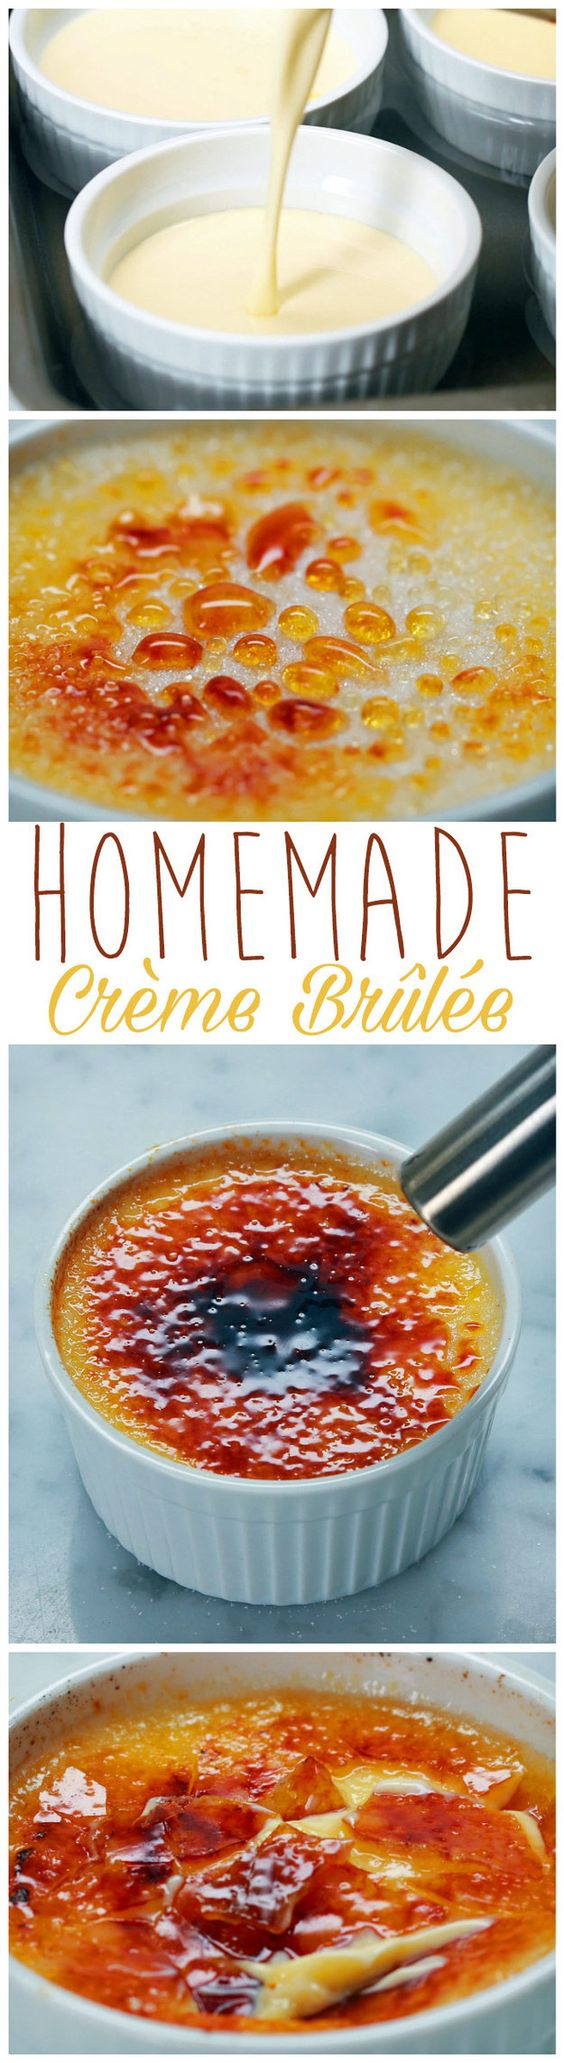 This Is How You Make Really Good Crème Brûlée At Home